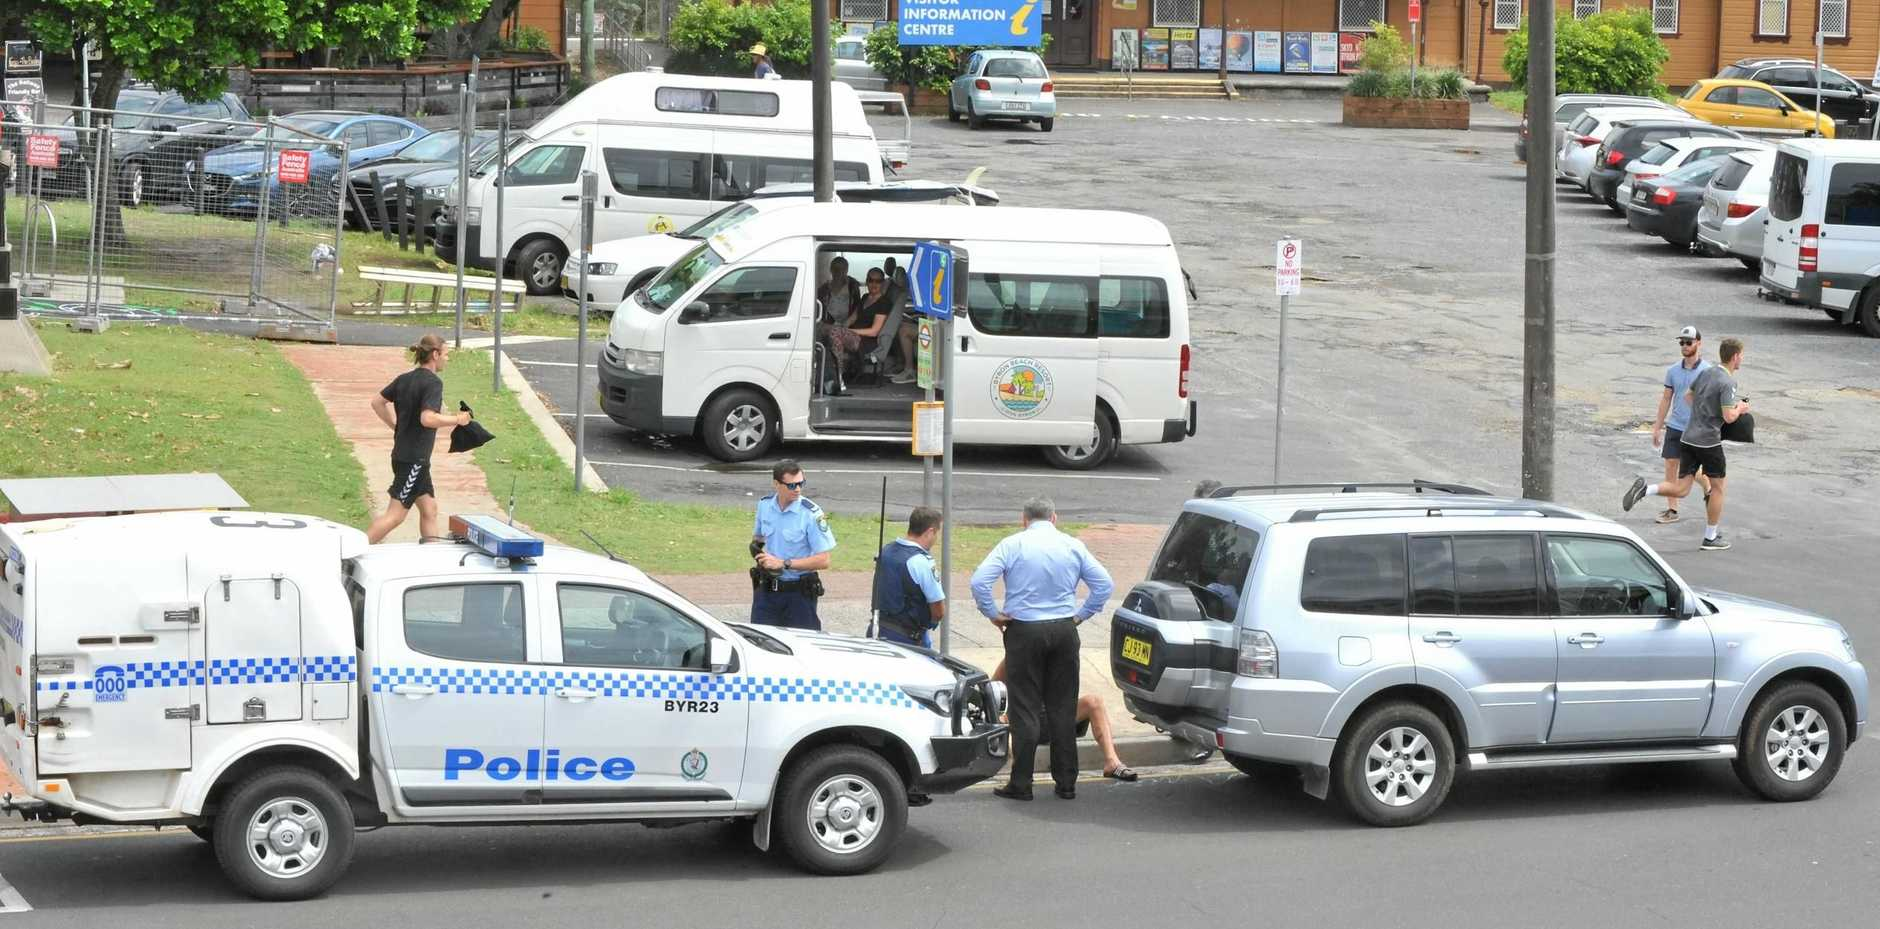 BYRON ARREST: Man arrested in Byron CBD. An axe was handed to police by witnesses.